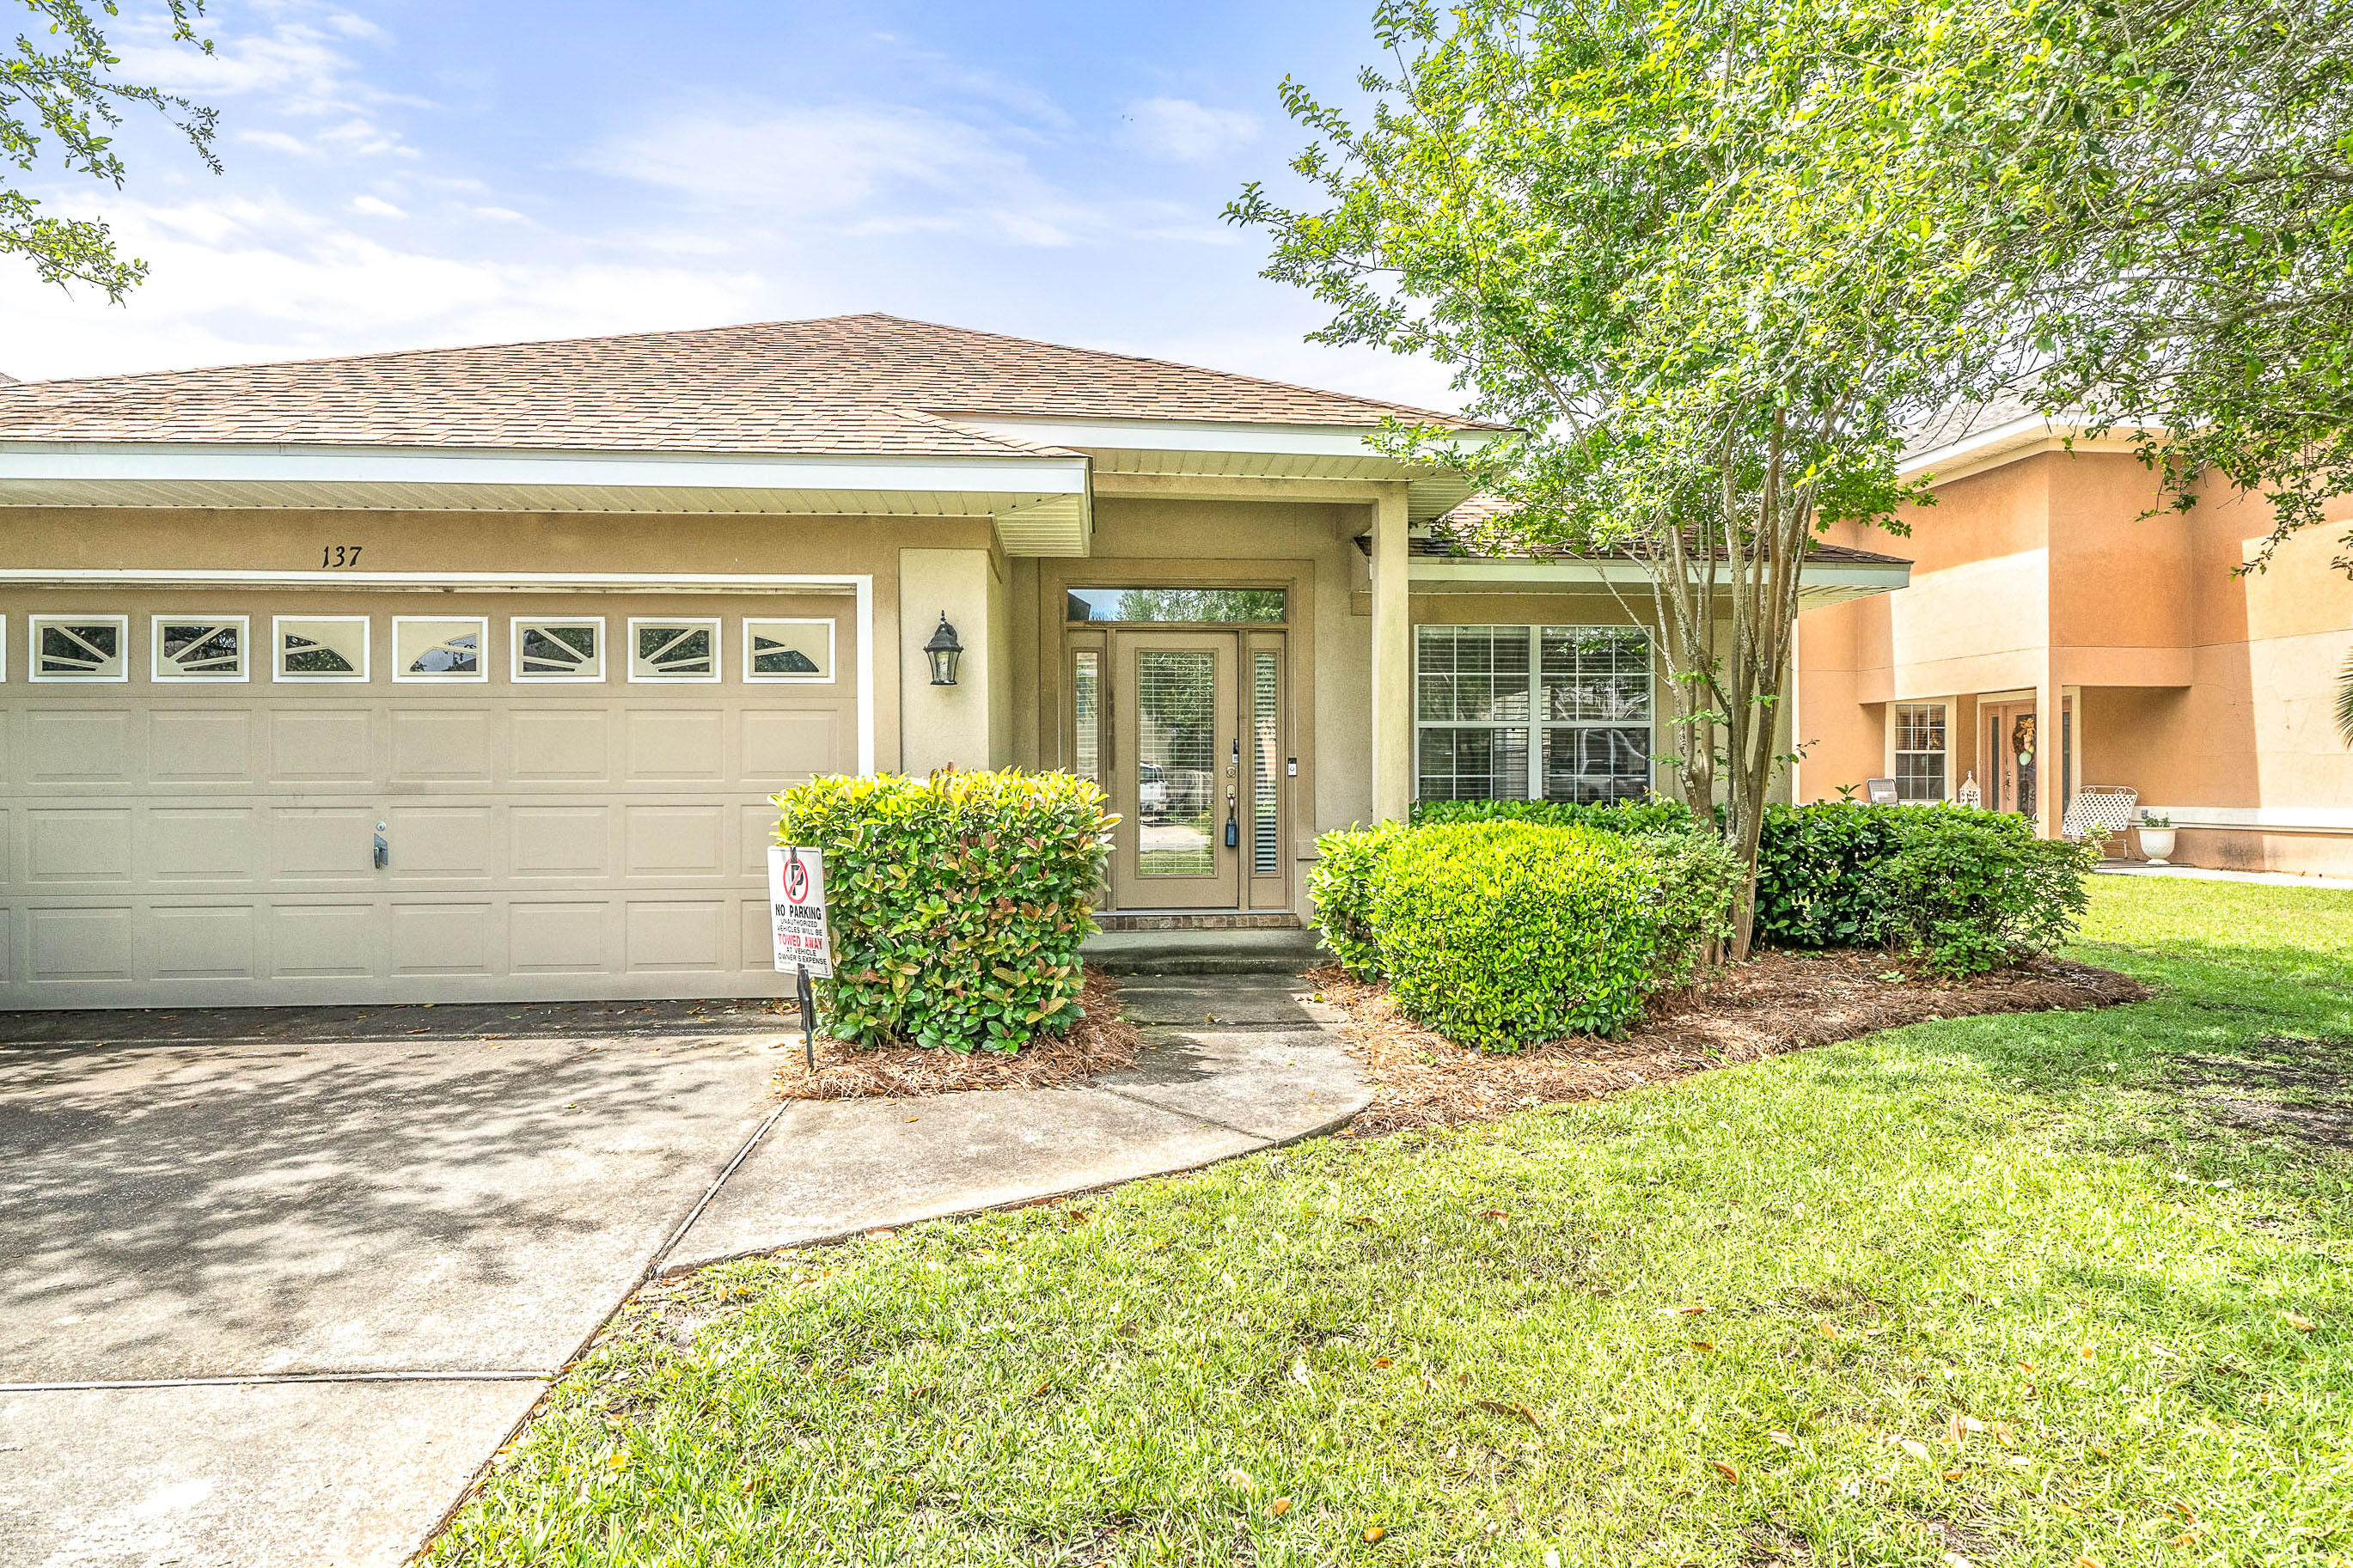 Great single story ''Florida cottage'' just a short distance from the Bay and a few miles to the beach.  Open floor plan with large rooms.  Stainless steel appliances, tile flooring, and Corian counters in the kitchen.  Large master bedroom with ensuite featuring a jetted tub, separate shower, and double vanites. Enjoy nights out by the small neighborhood lake from the comfort of your covered porch.  Driftwood Estates is very convenient to Sacred Heart Hospital, Grand Boulevard at Sandestin, 30-A, and all the fine dining and shopping that Destin has to offer.